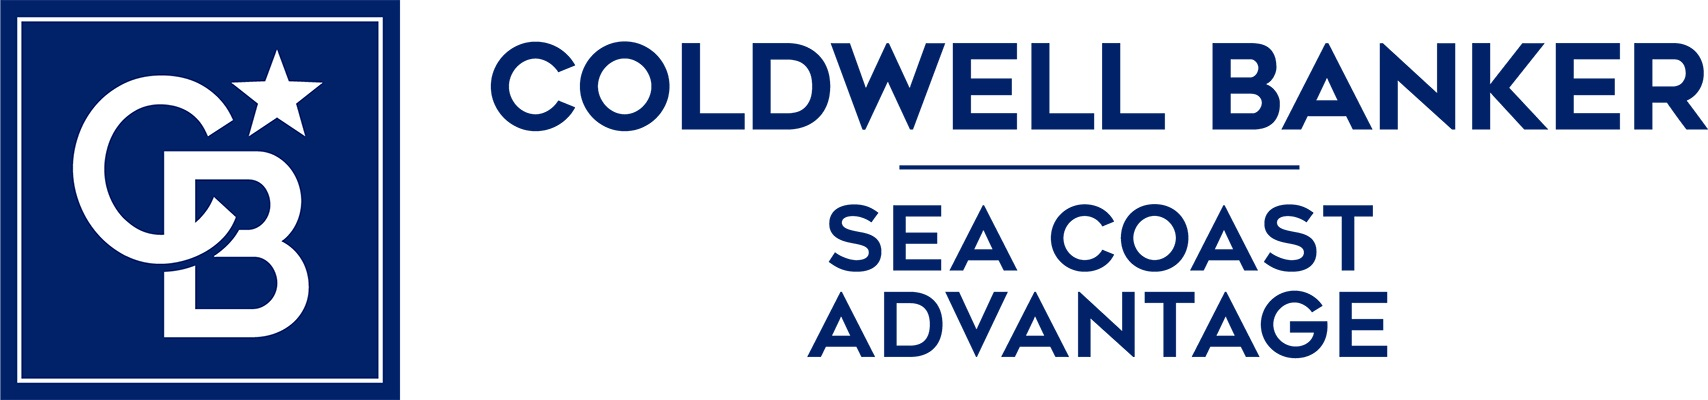 Jules Kovacs - Coldwell Banker Sea Coast Advantage Realty